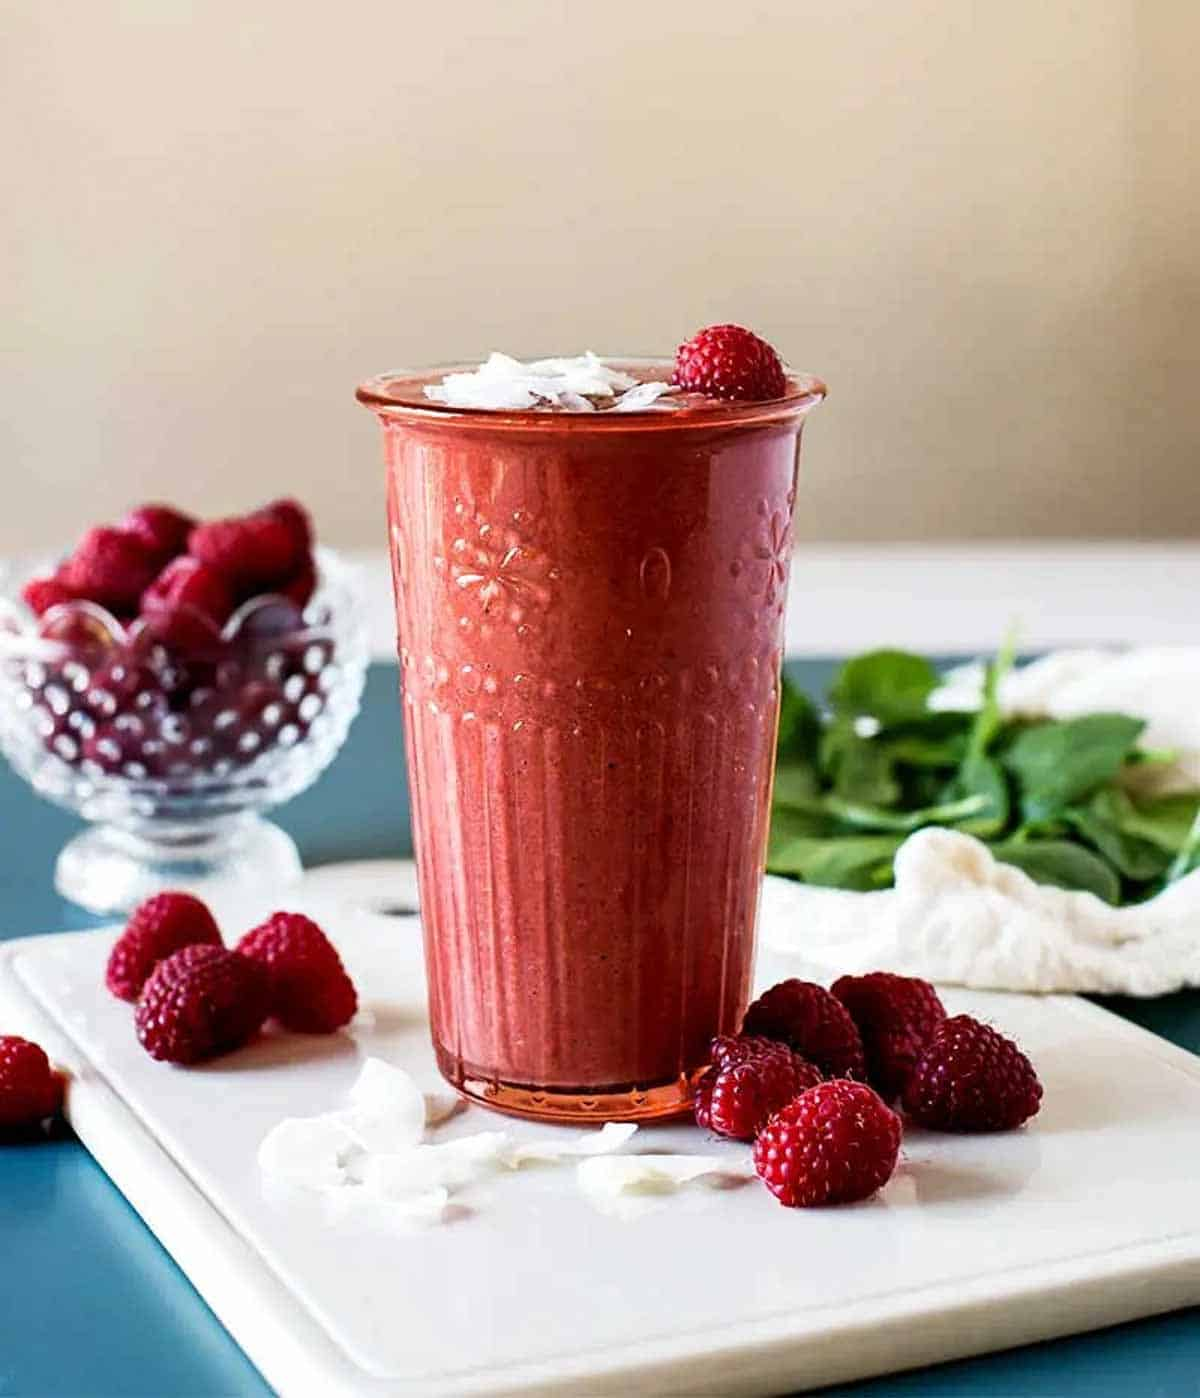 Raspberry smoothie topped with coconut